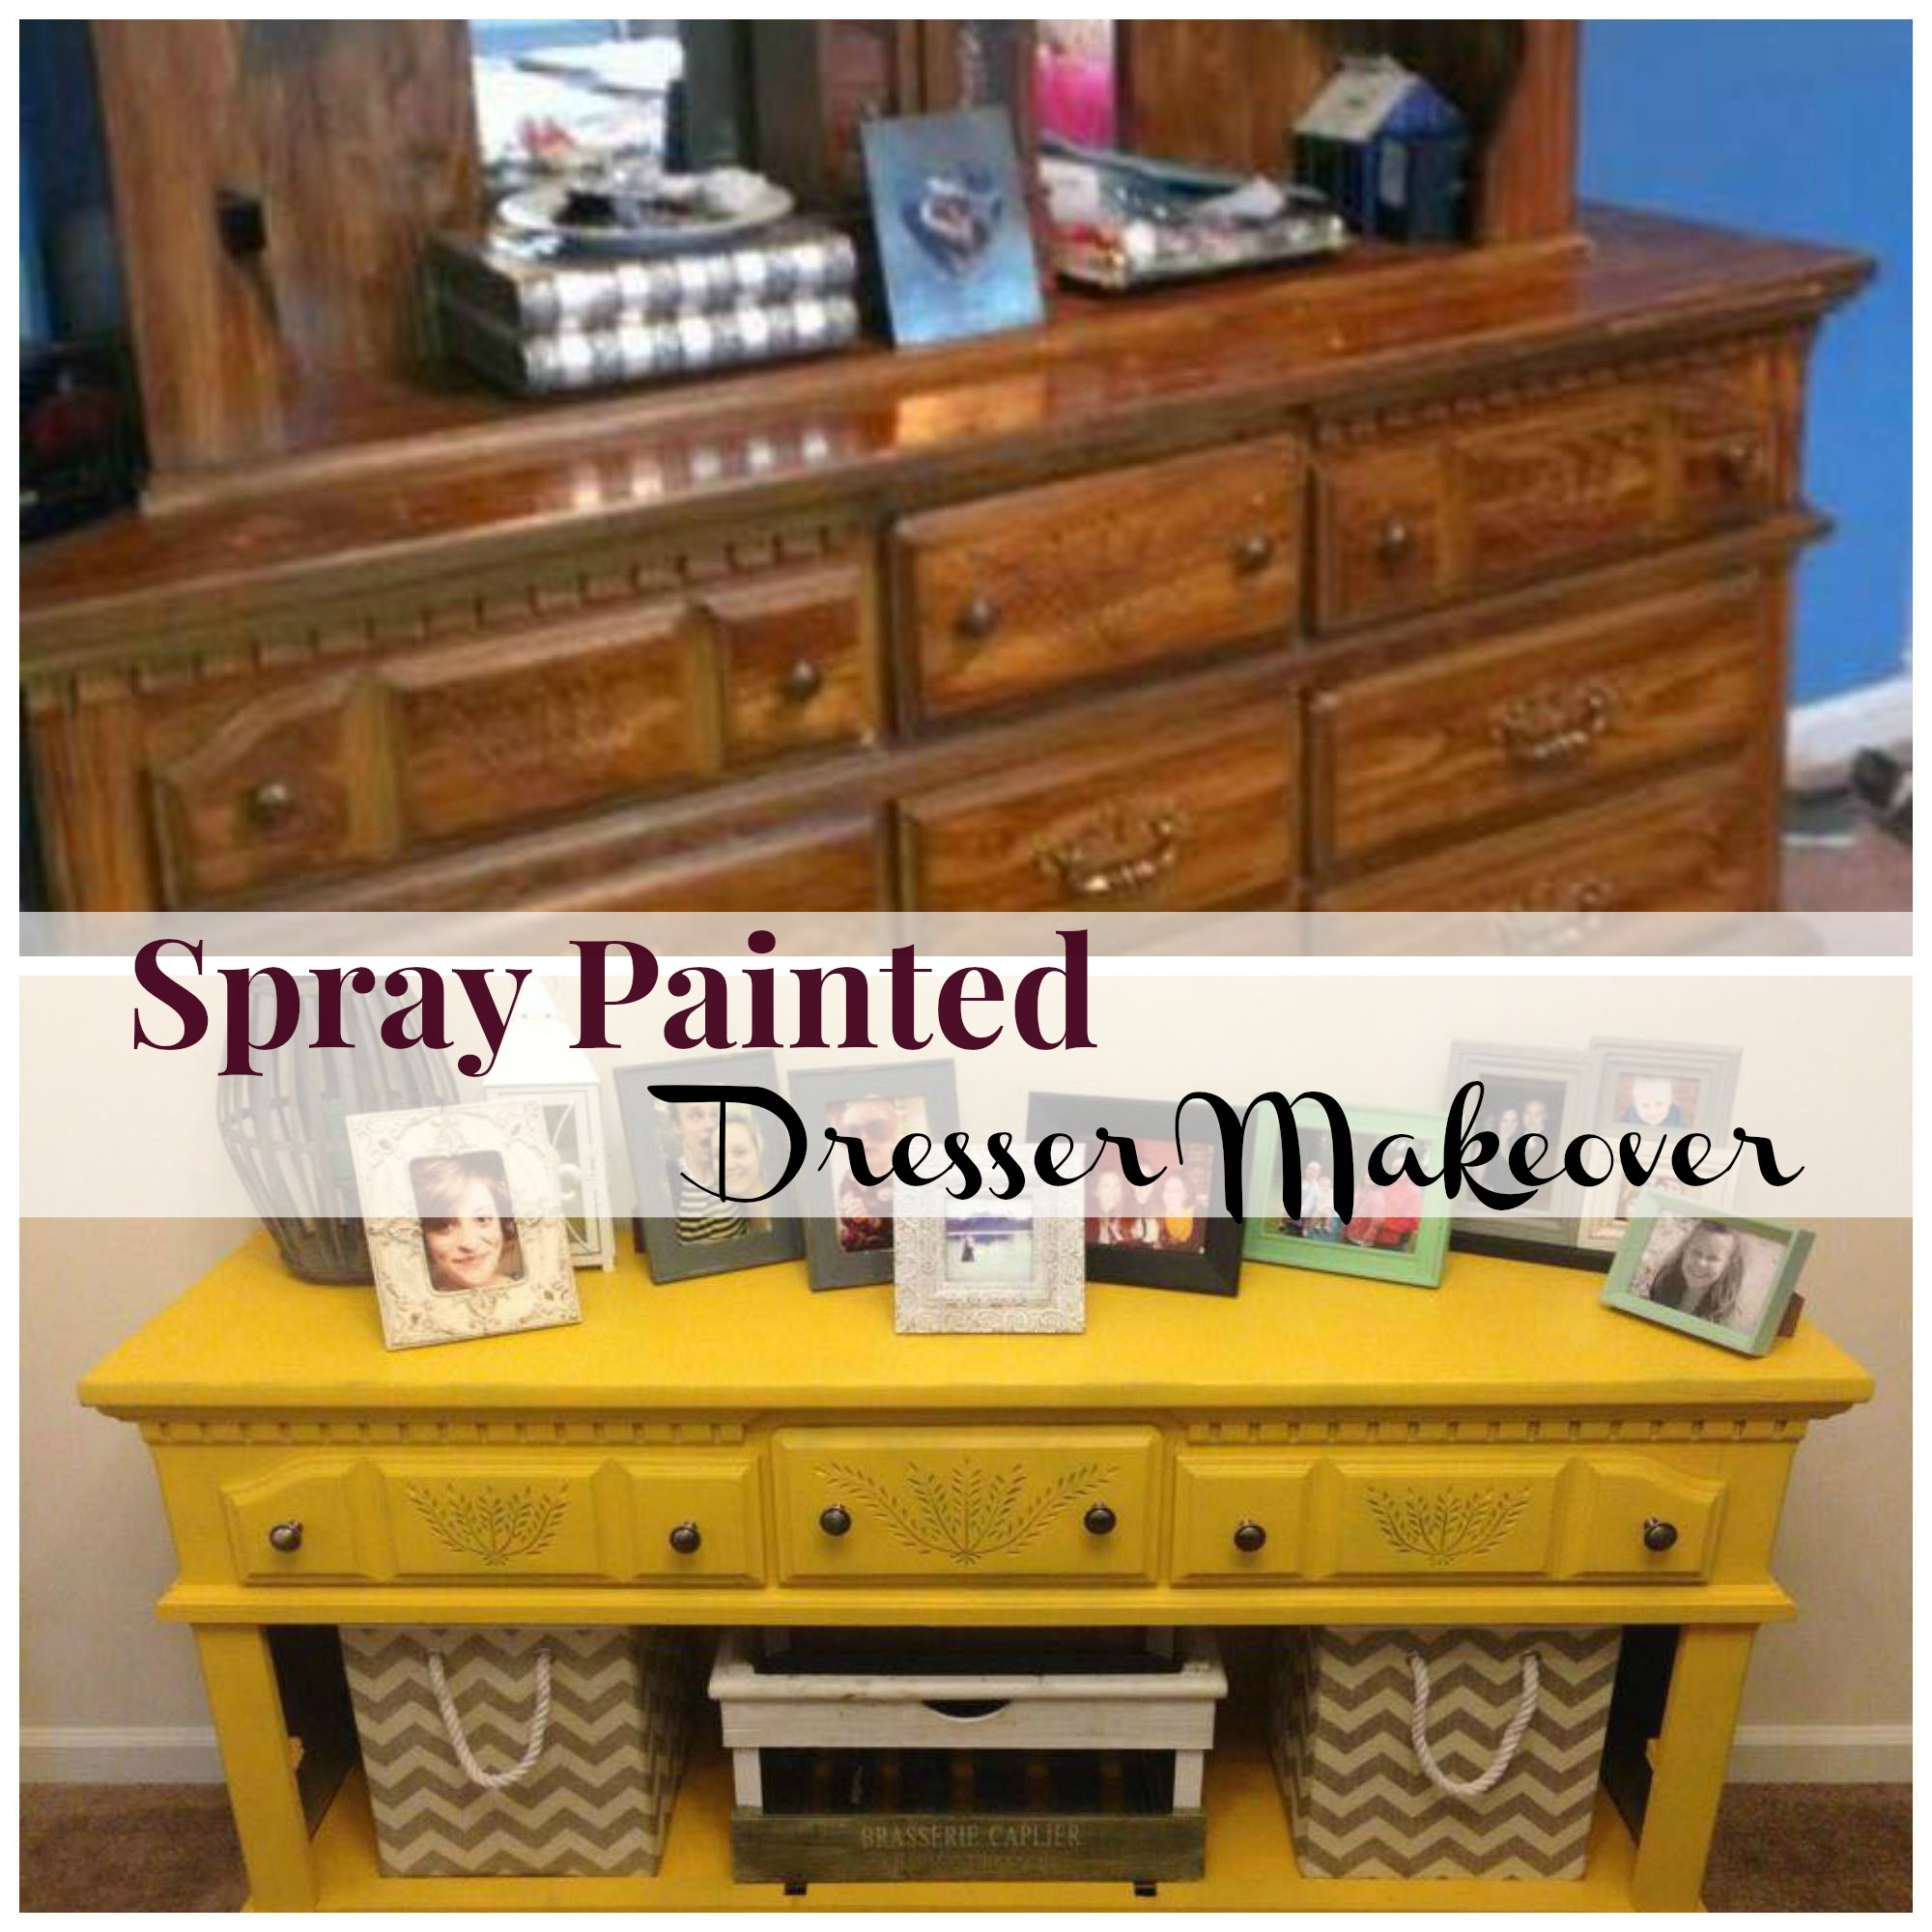 Spray Painted Dresser Makeover The Happy Housewife Home Management